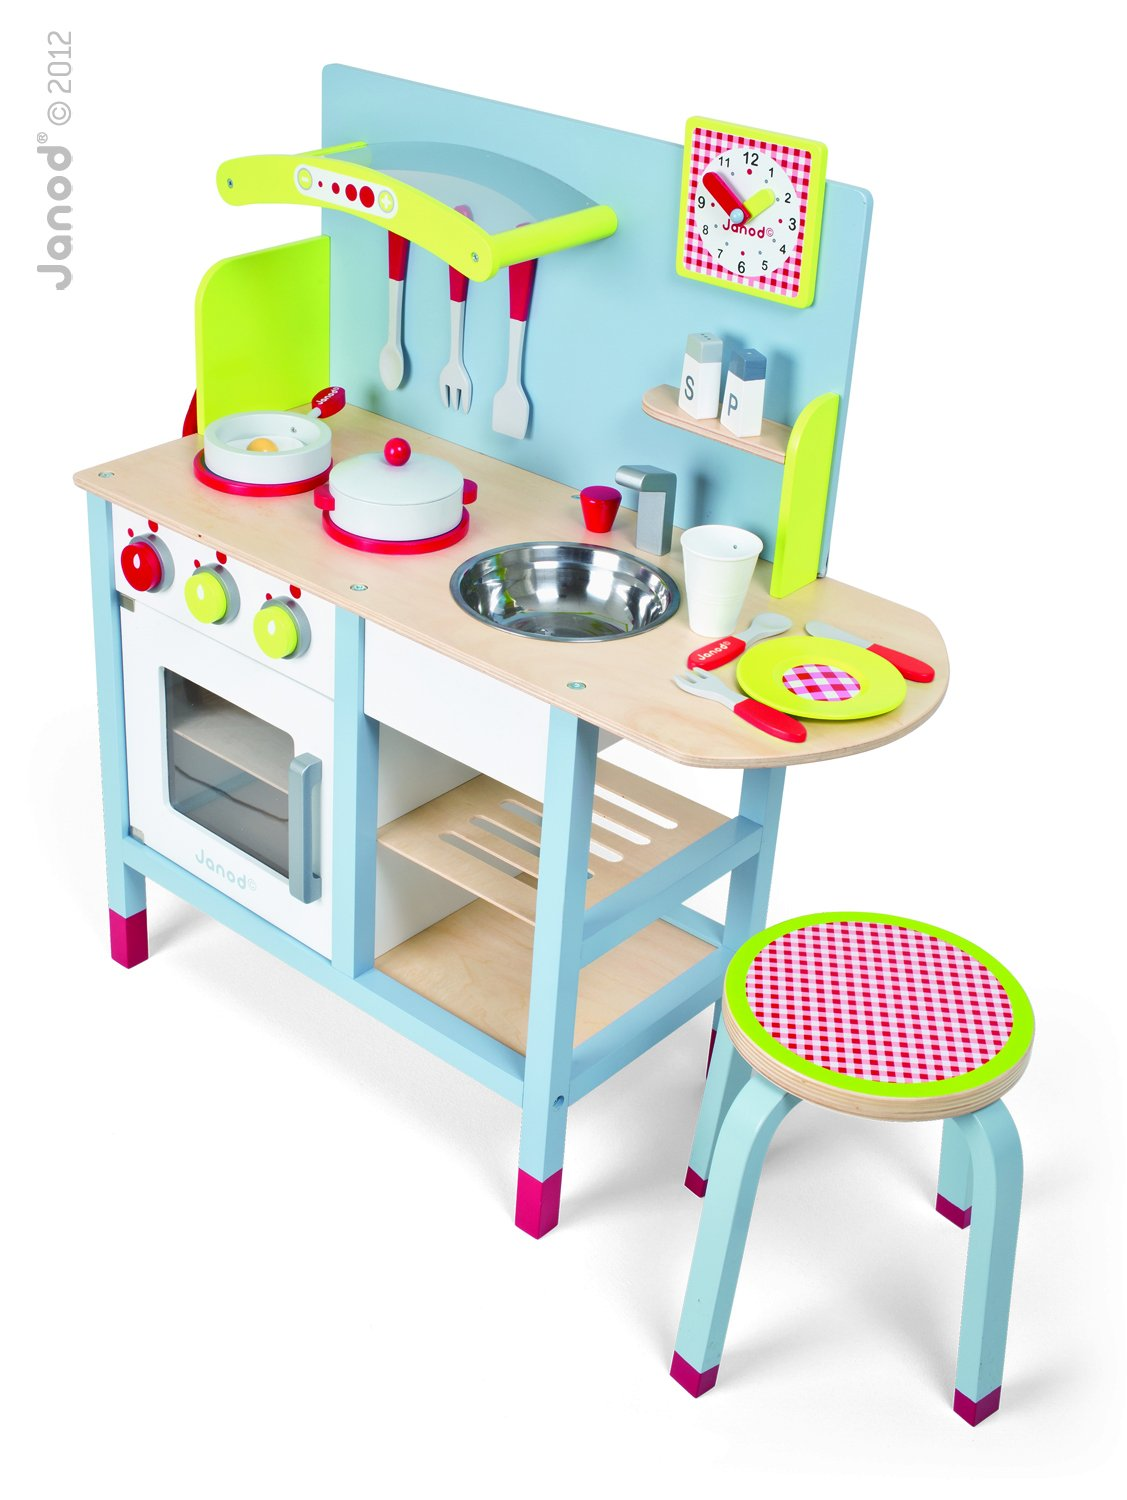 Amazon.com: Janod Picnik Duo Kitchen: Toys & Games